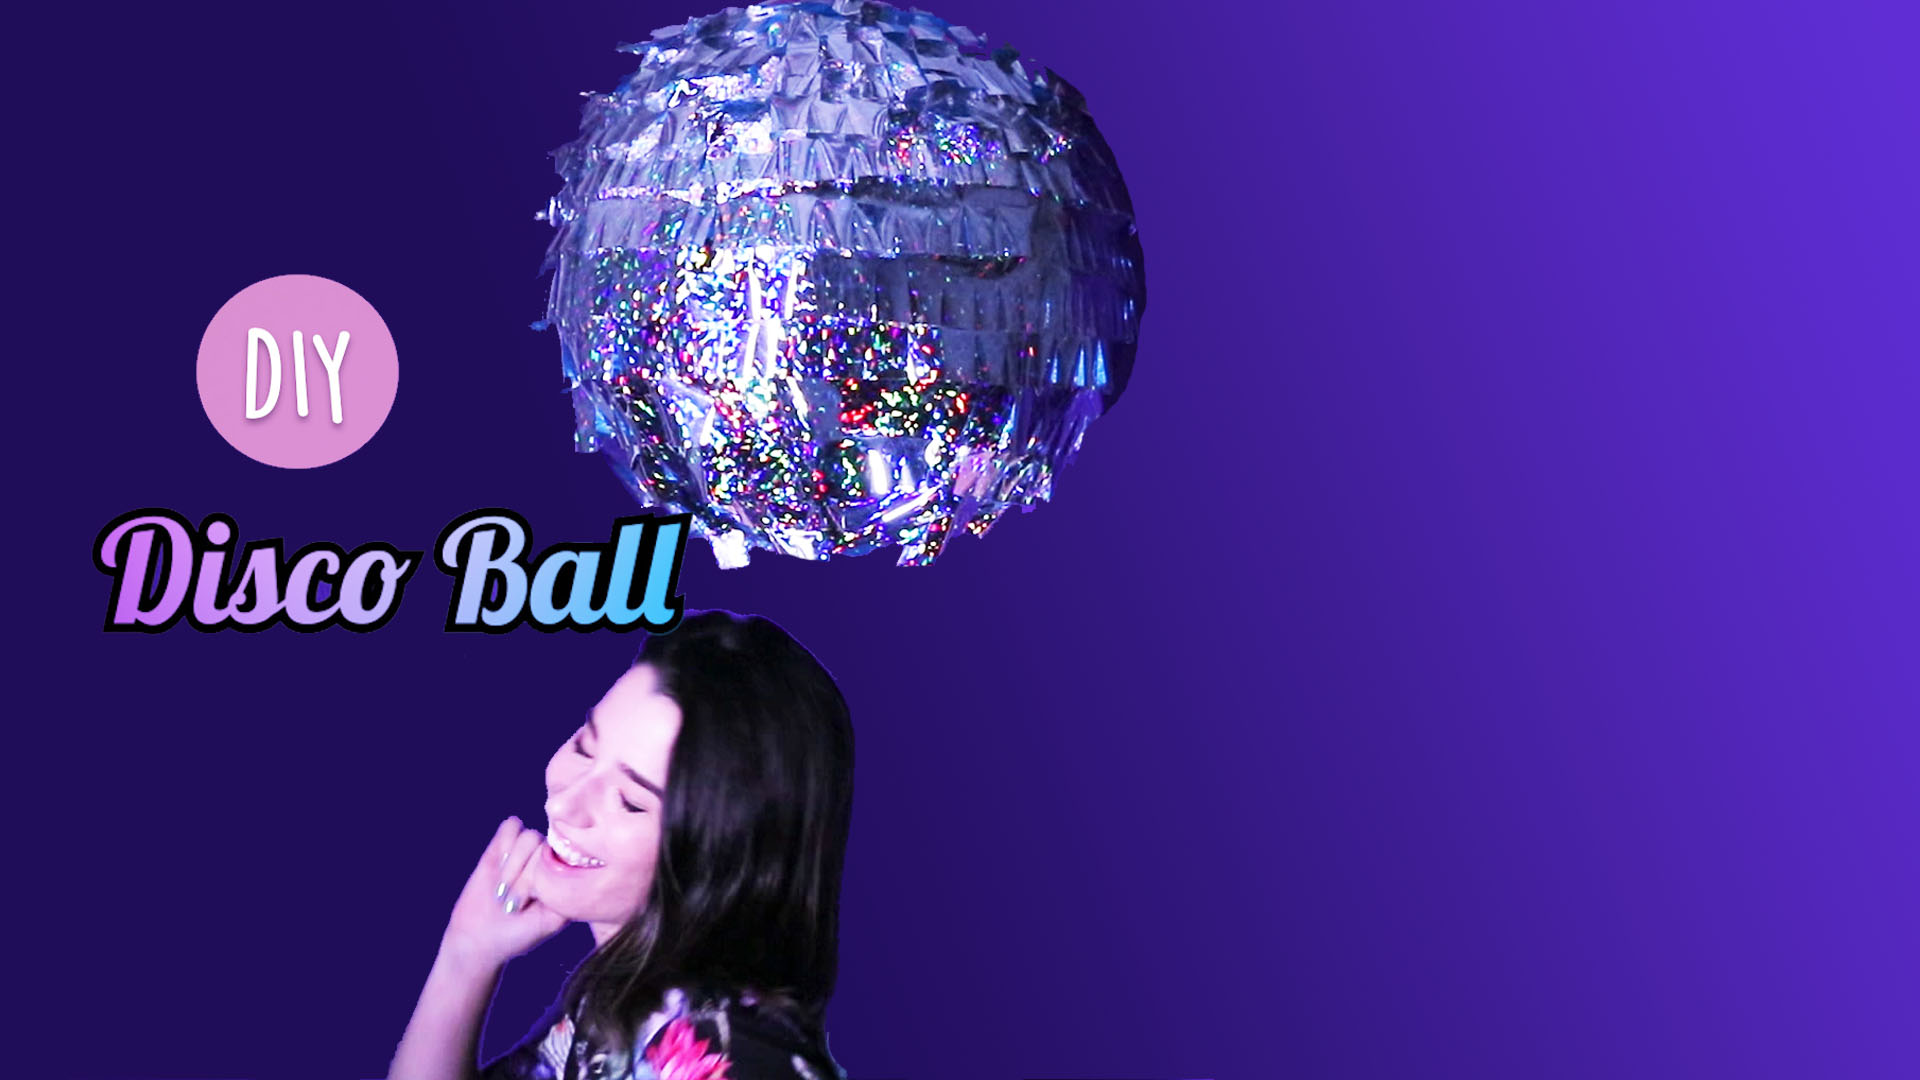 This DIY disco ball will turn your apartment into a night club just in time for New Year's Eve